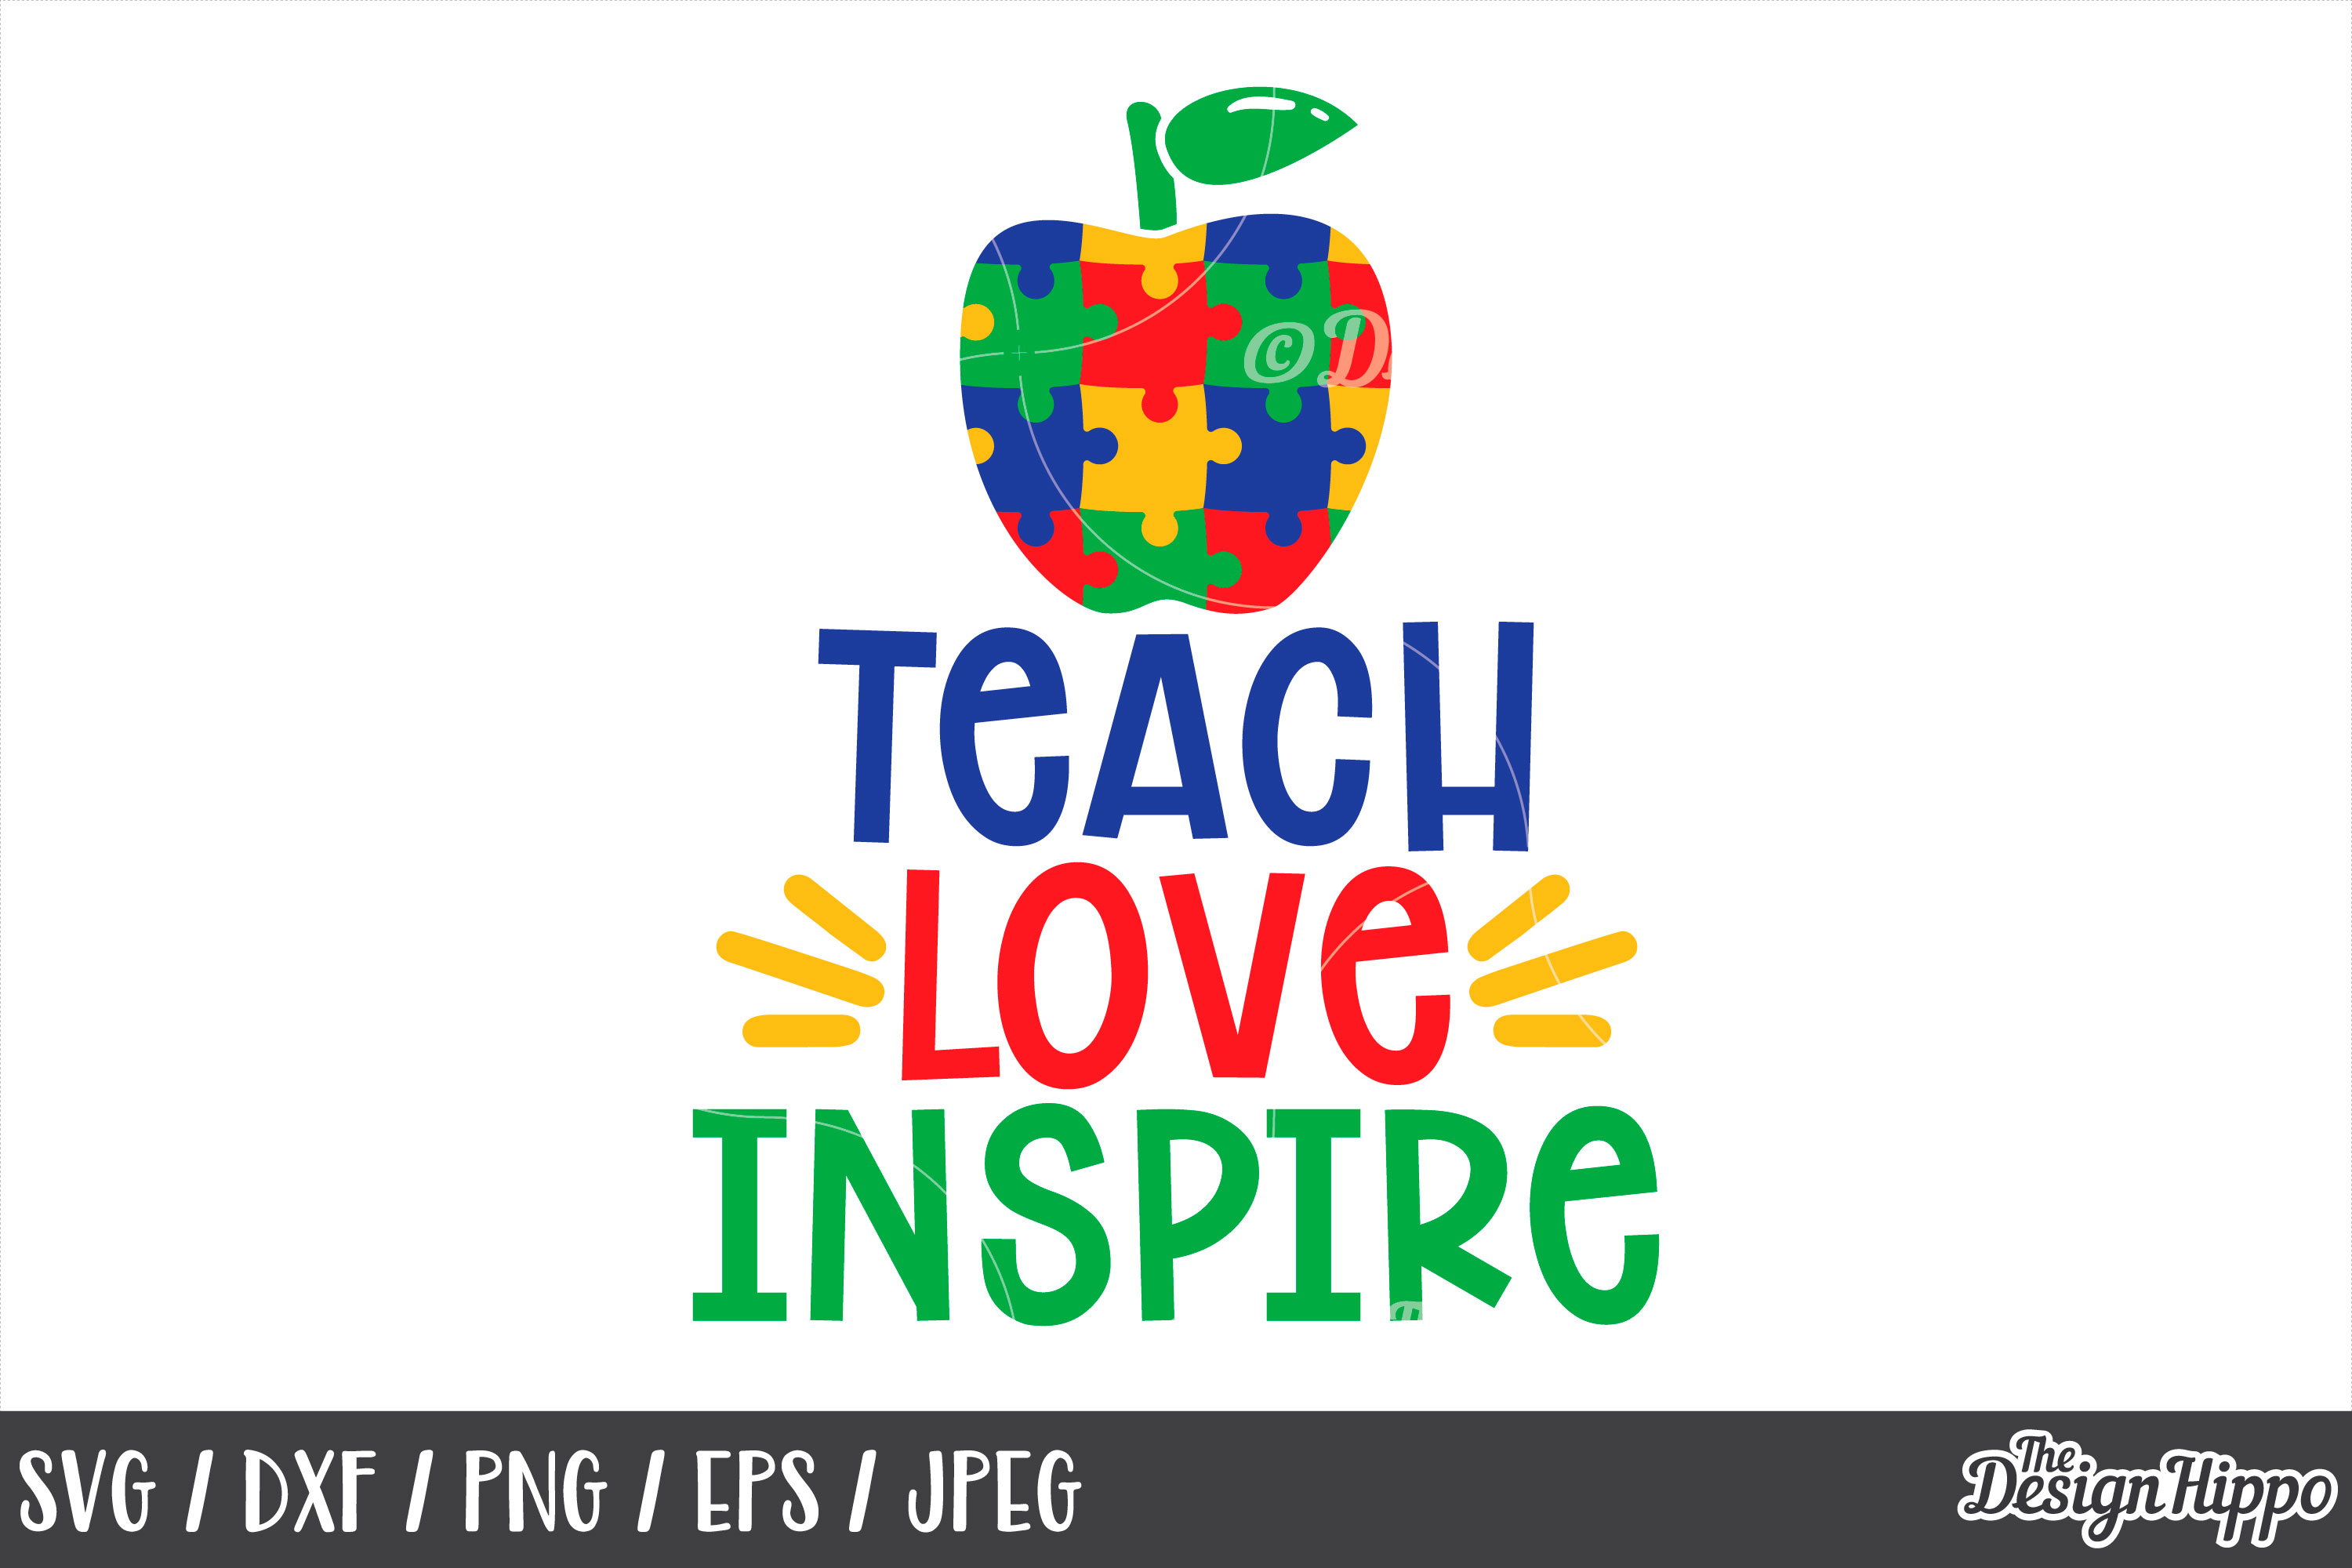 Autism Teacher, Teach Love Inspire, Apple, SVG DXF PNG Files example image 1